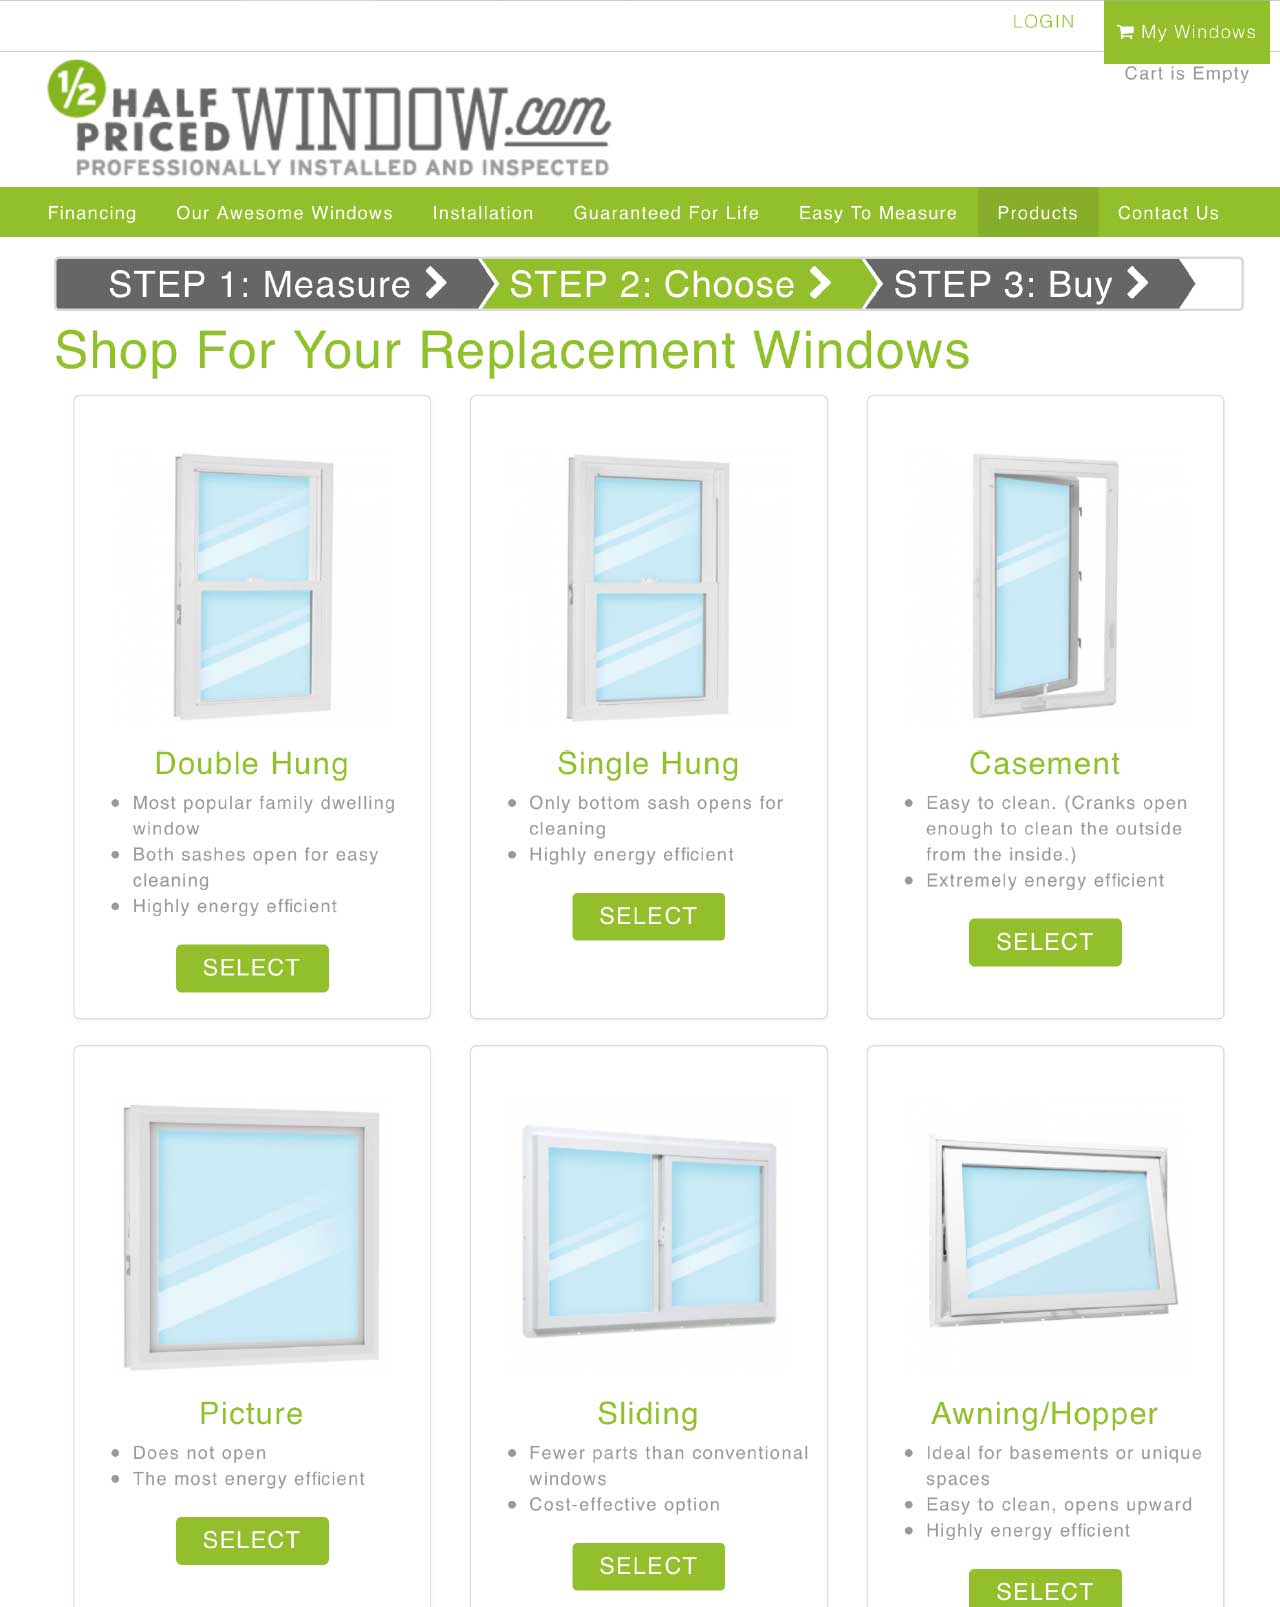 website HalfPricedWindow IMG04